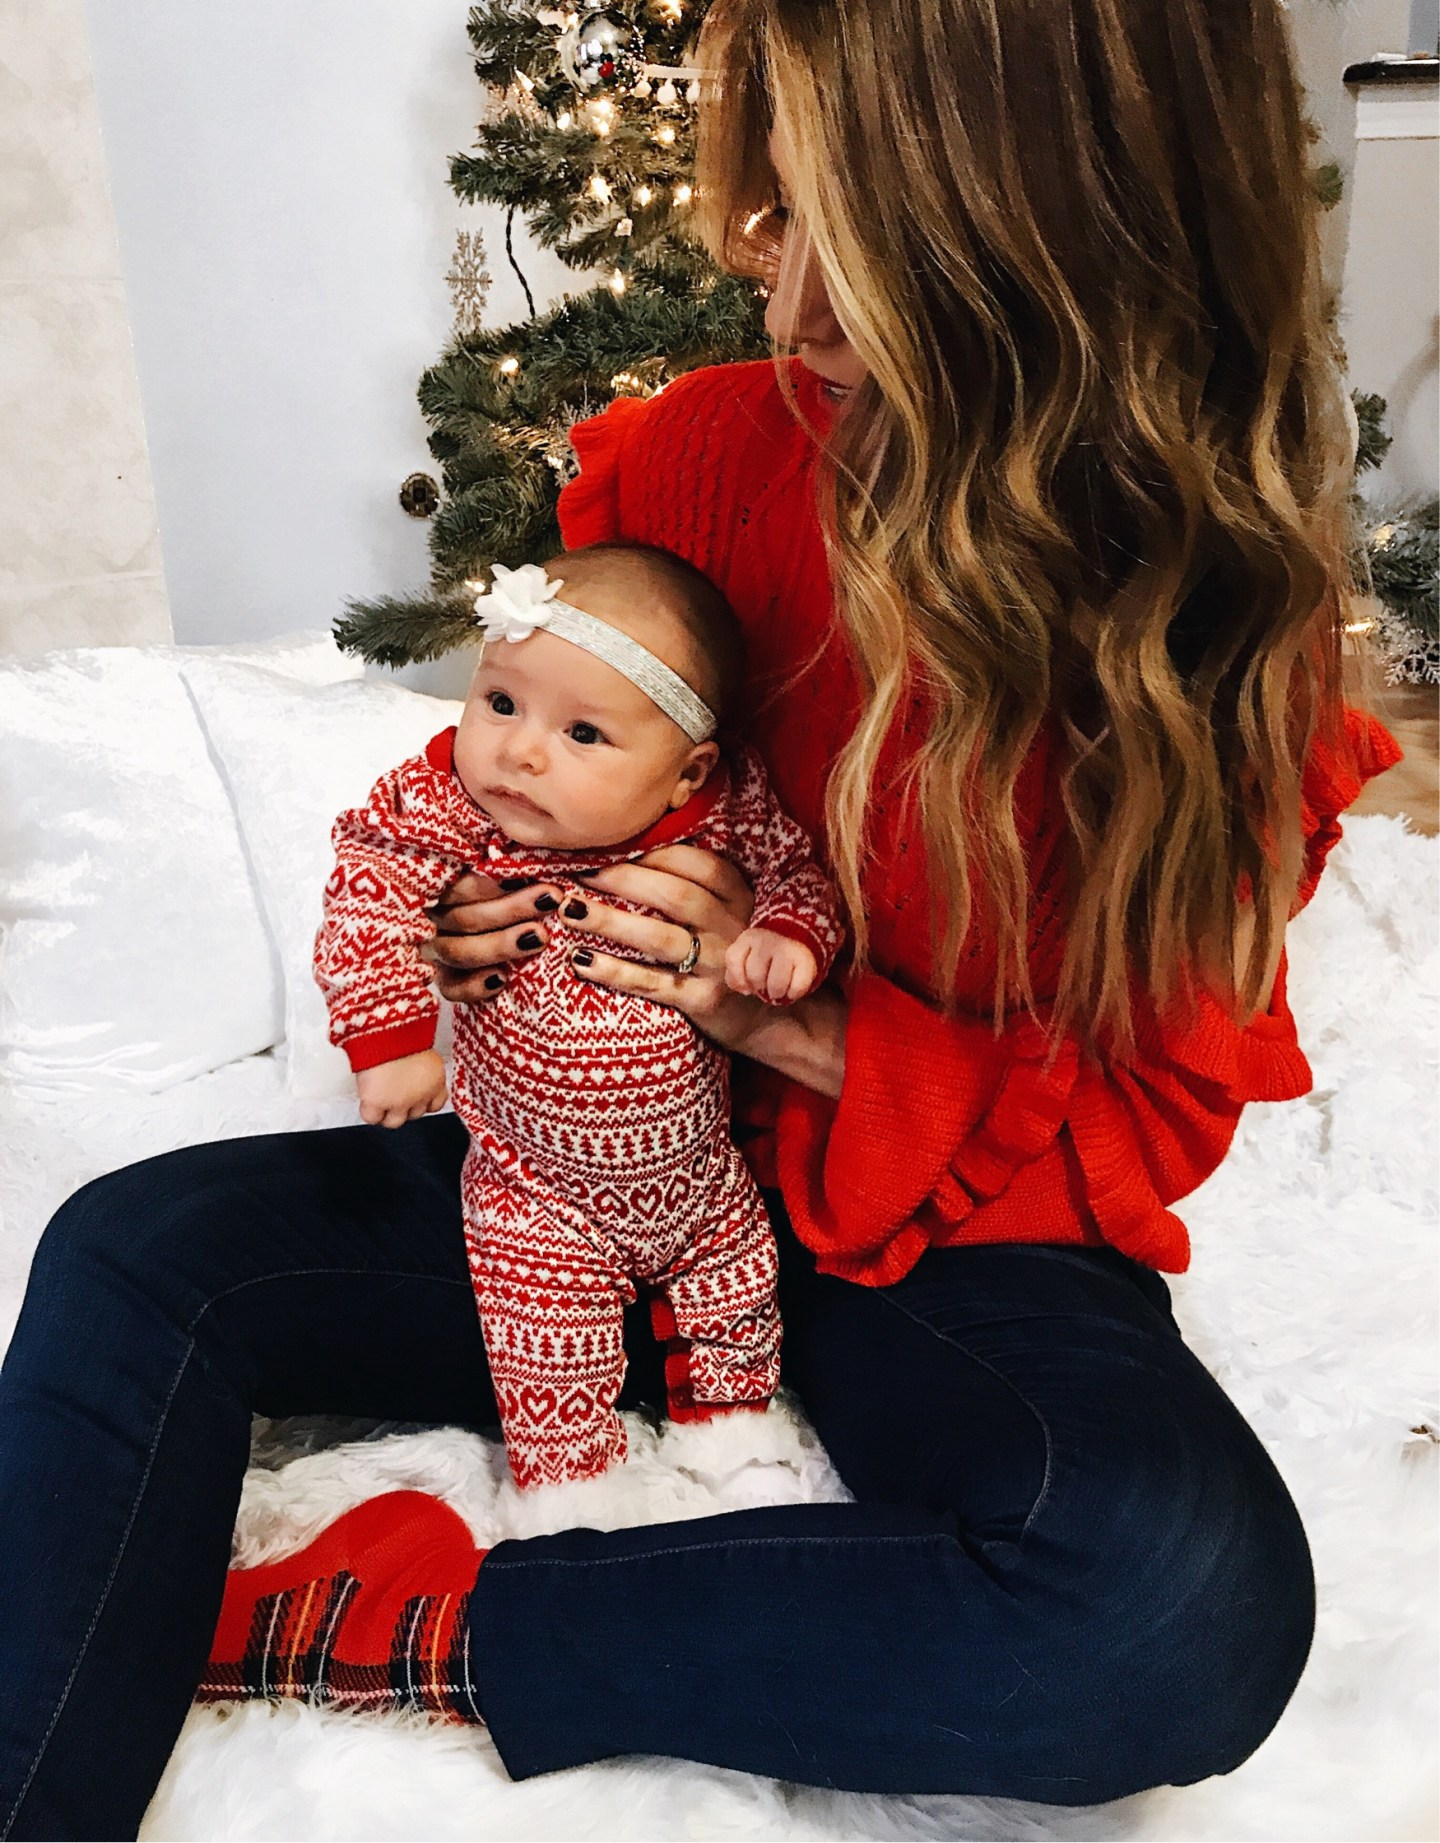 mommy and me Christmas photo - fashion blogger